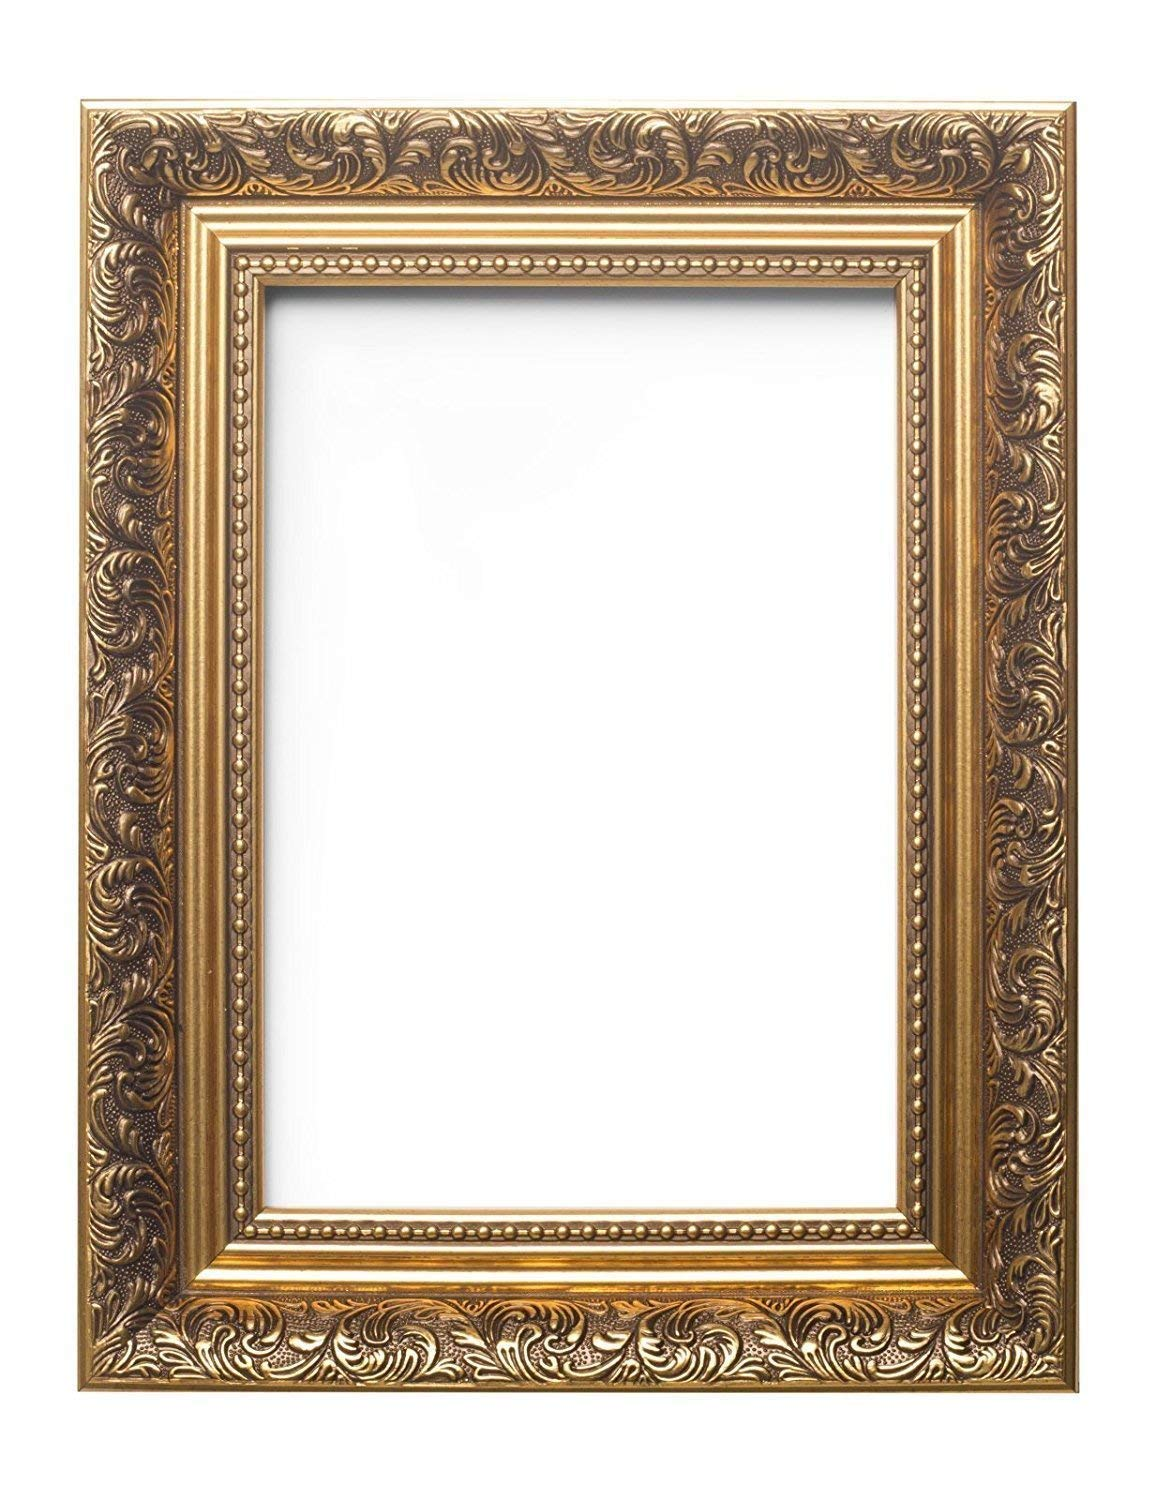 Memory Box Ornate Swept Antique Style French Baroque Style Picture Frame/Photo Frame/Poster Frame - 14''X11'' Gold - FBA-OSAFS2-GLD-14-11 by Paintings Frames (Image #1)